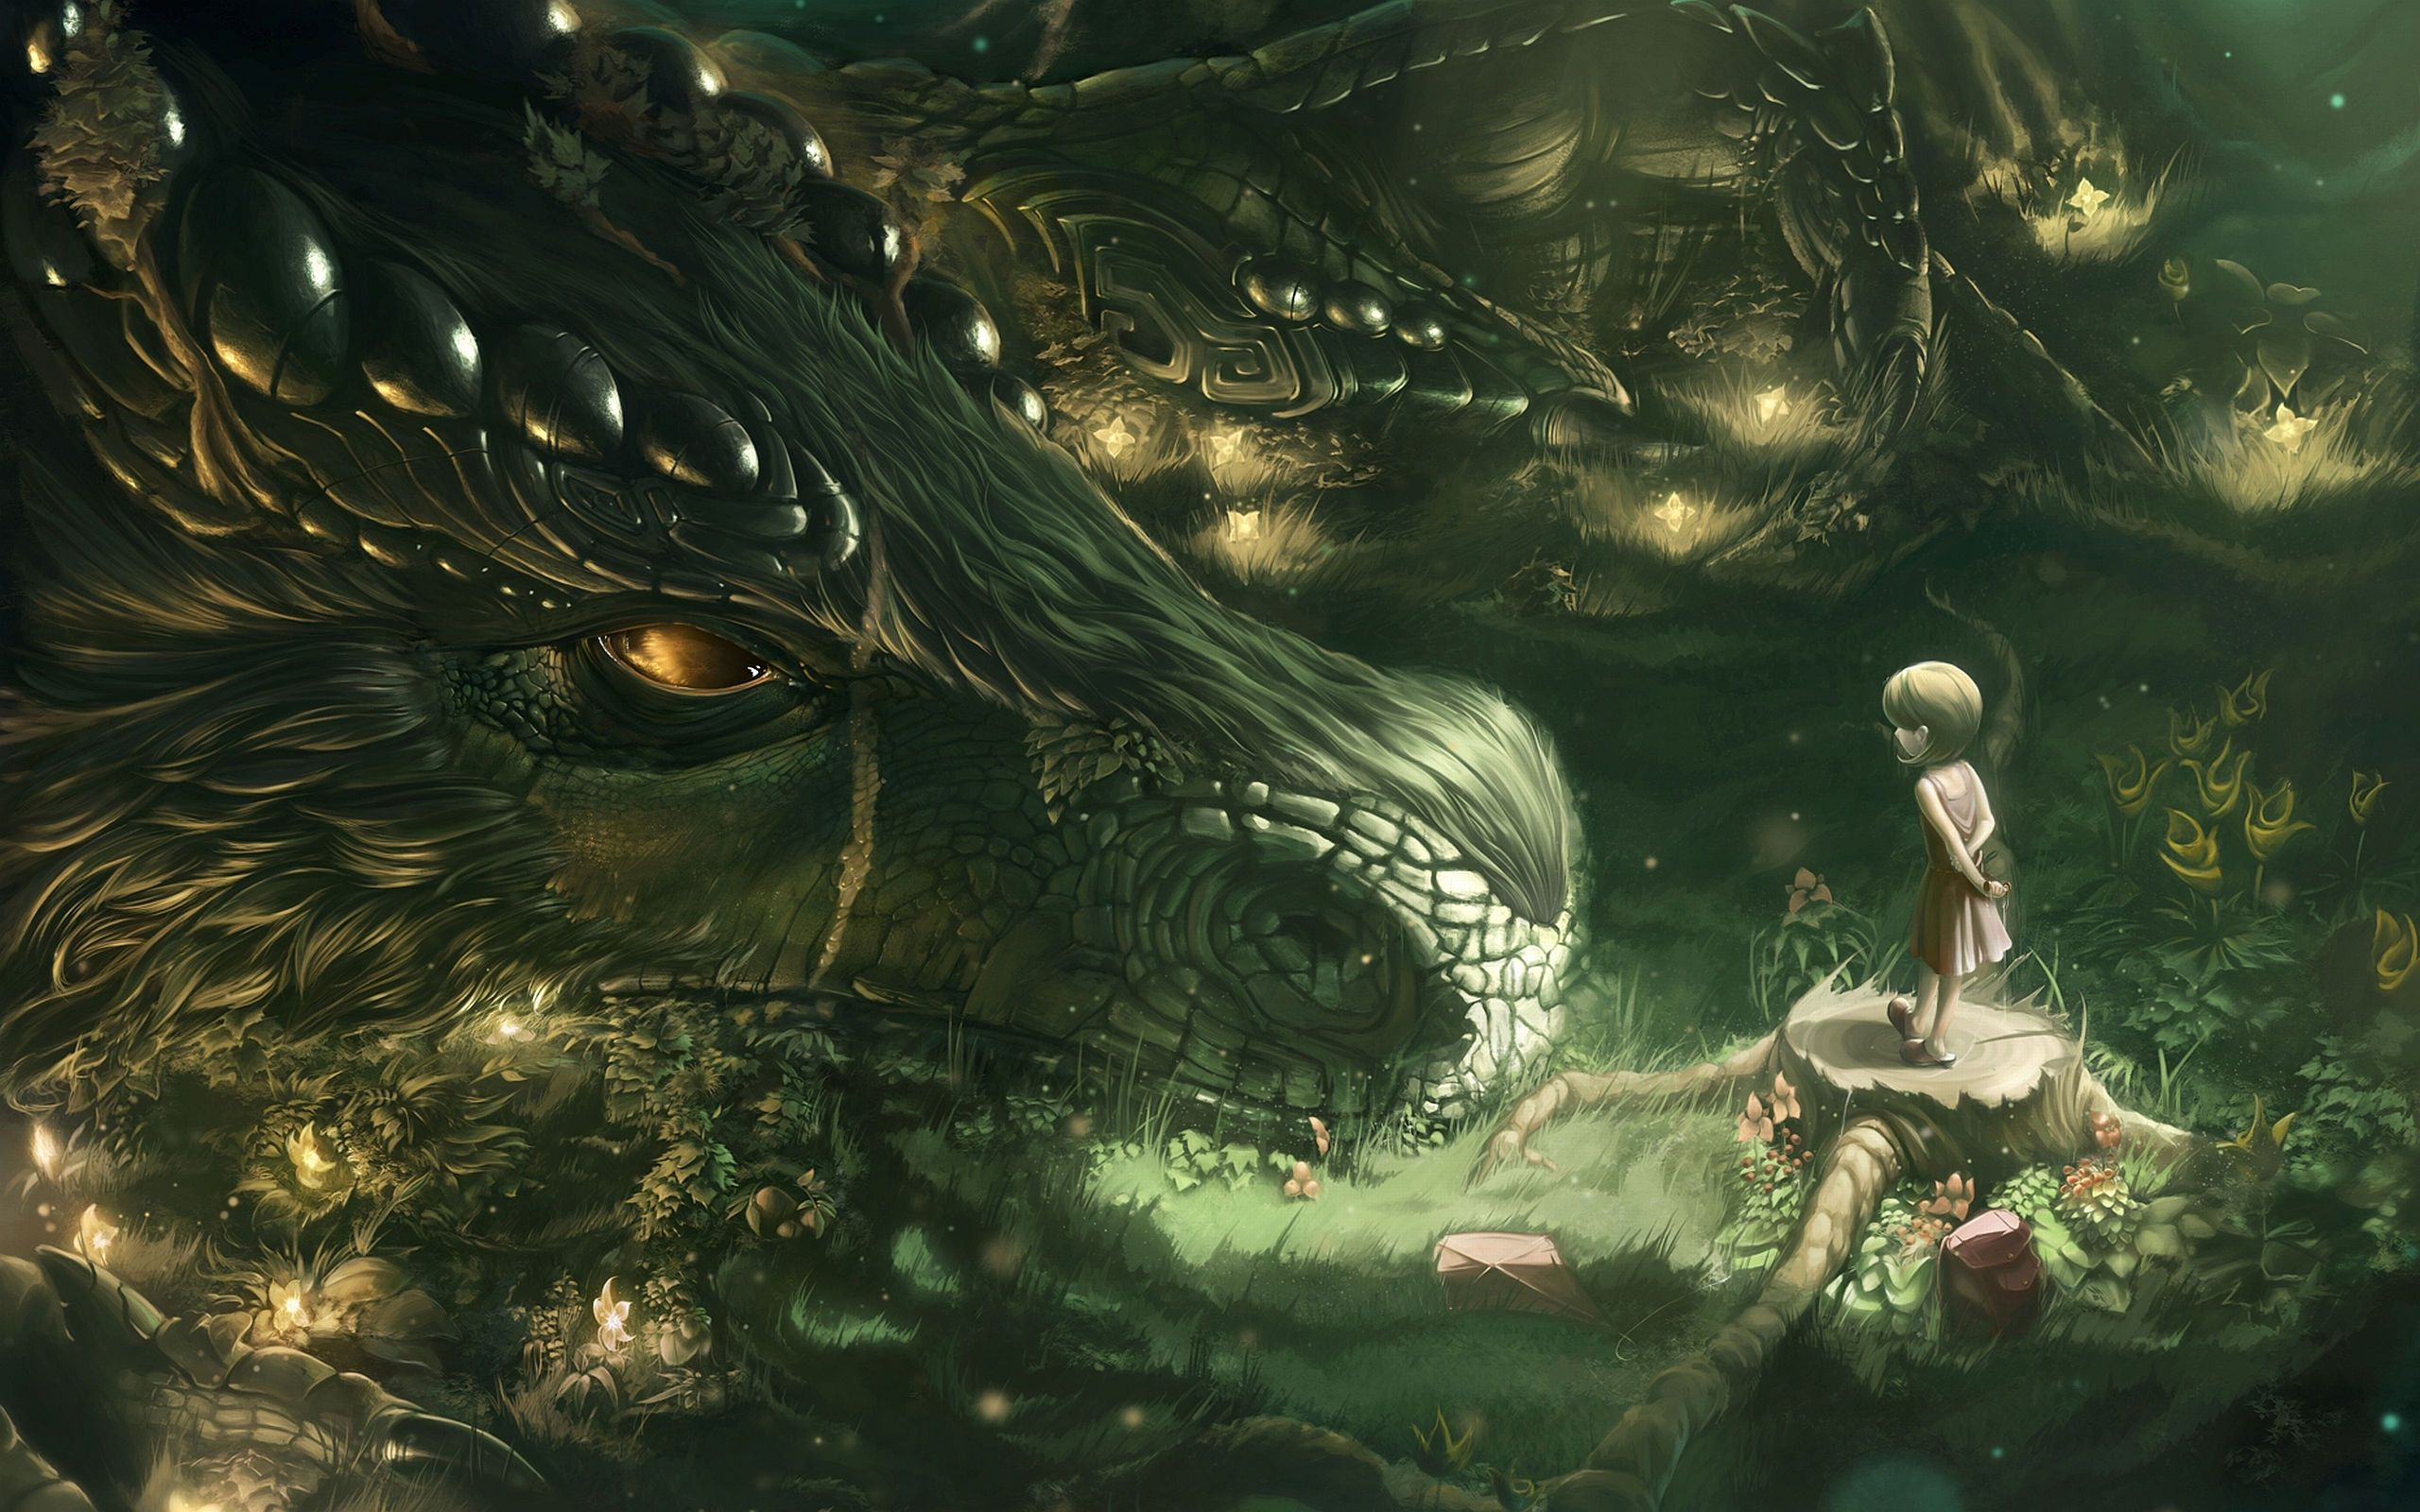 Anime Dragons Fantasy Art Wallpaper No 62 Wallhaven